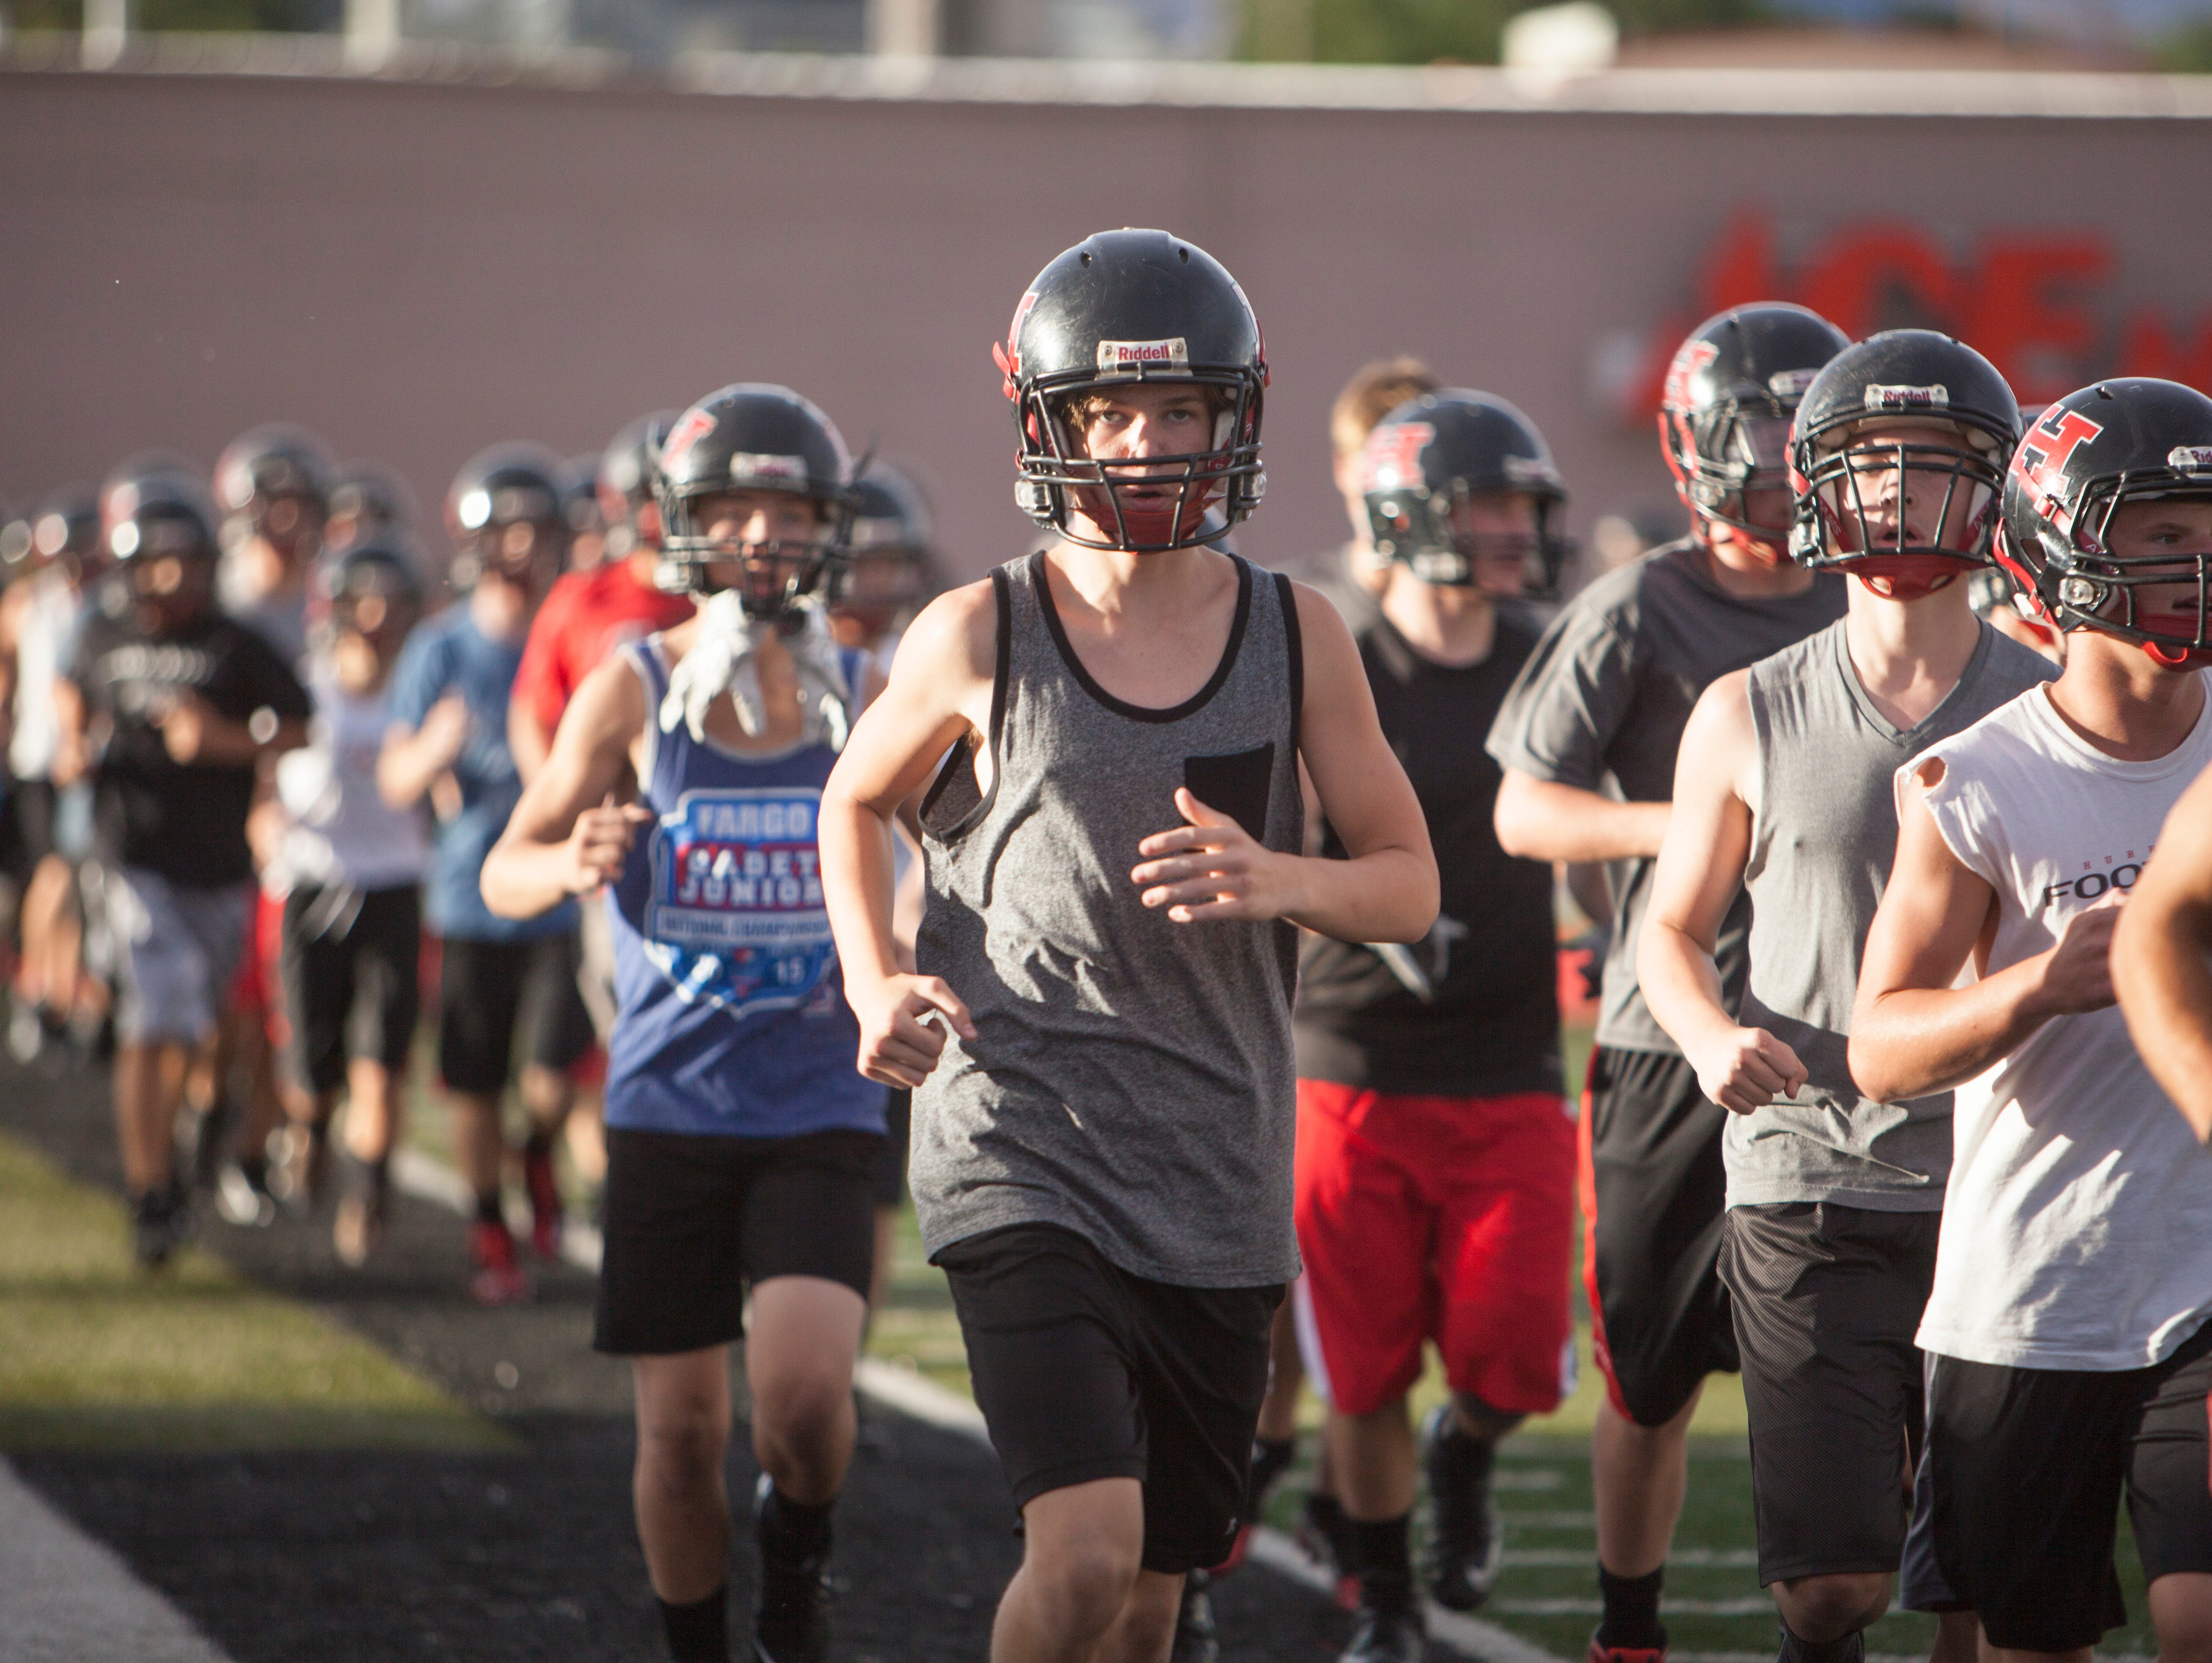 Members of the Hurricane High School football team practice in the final weeks before the start of the season Friday, Aug. 7, 2015.